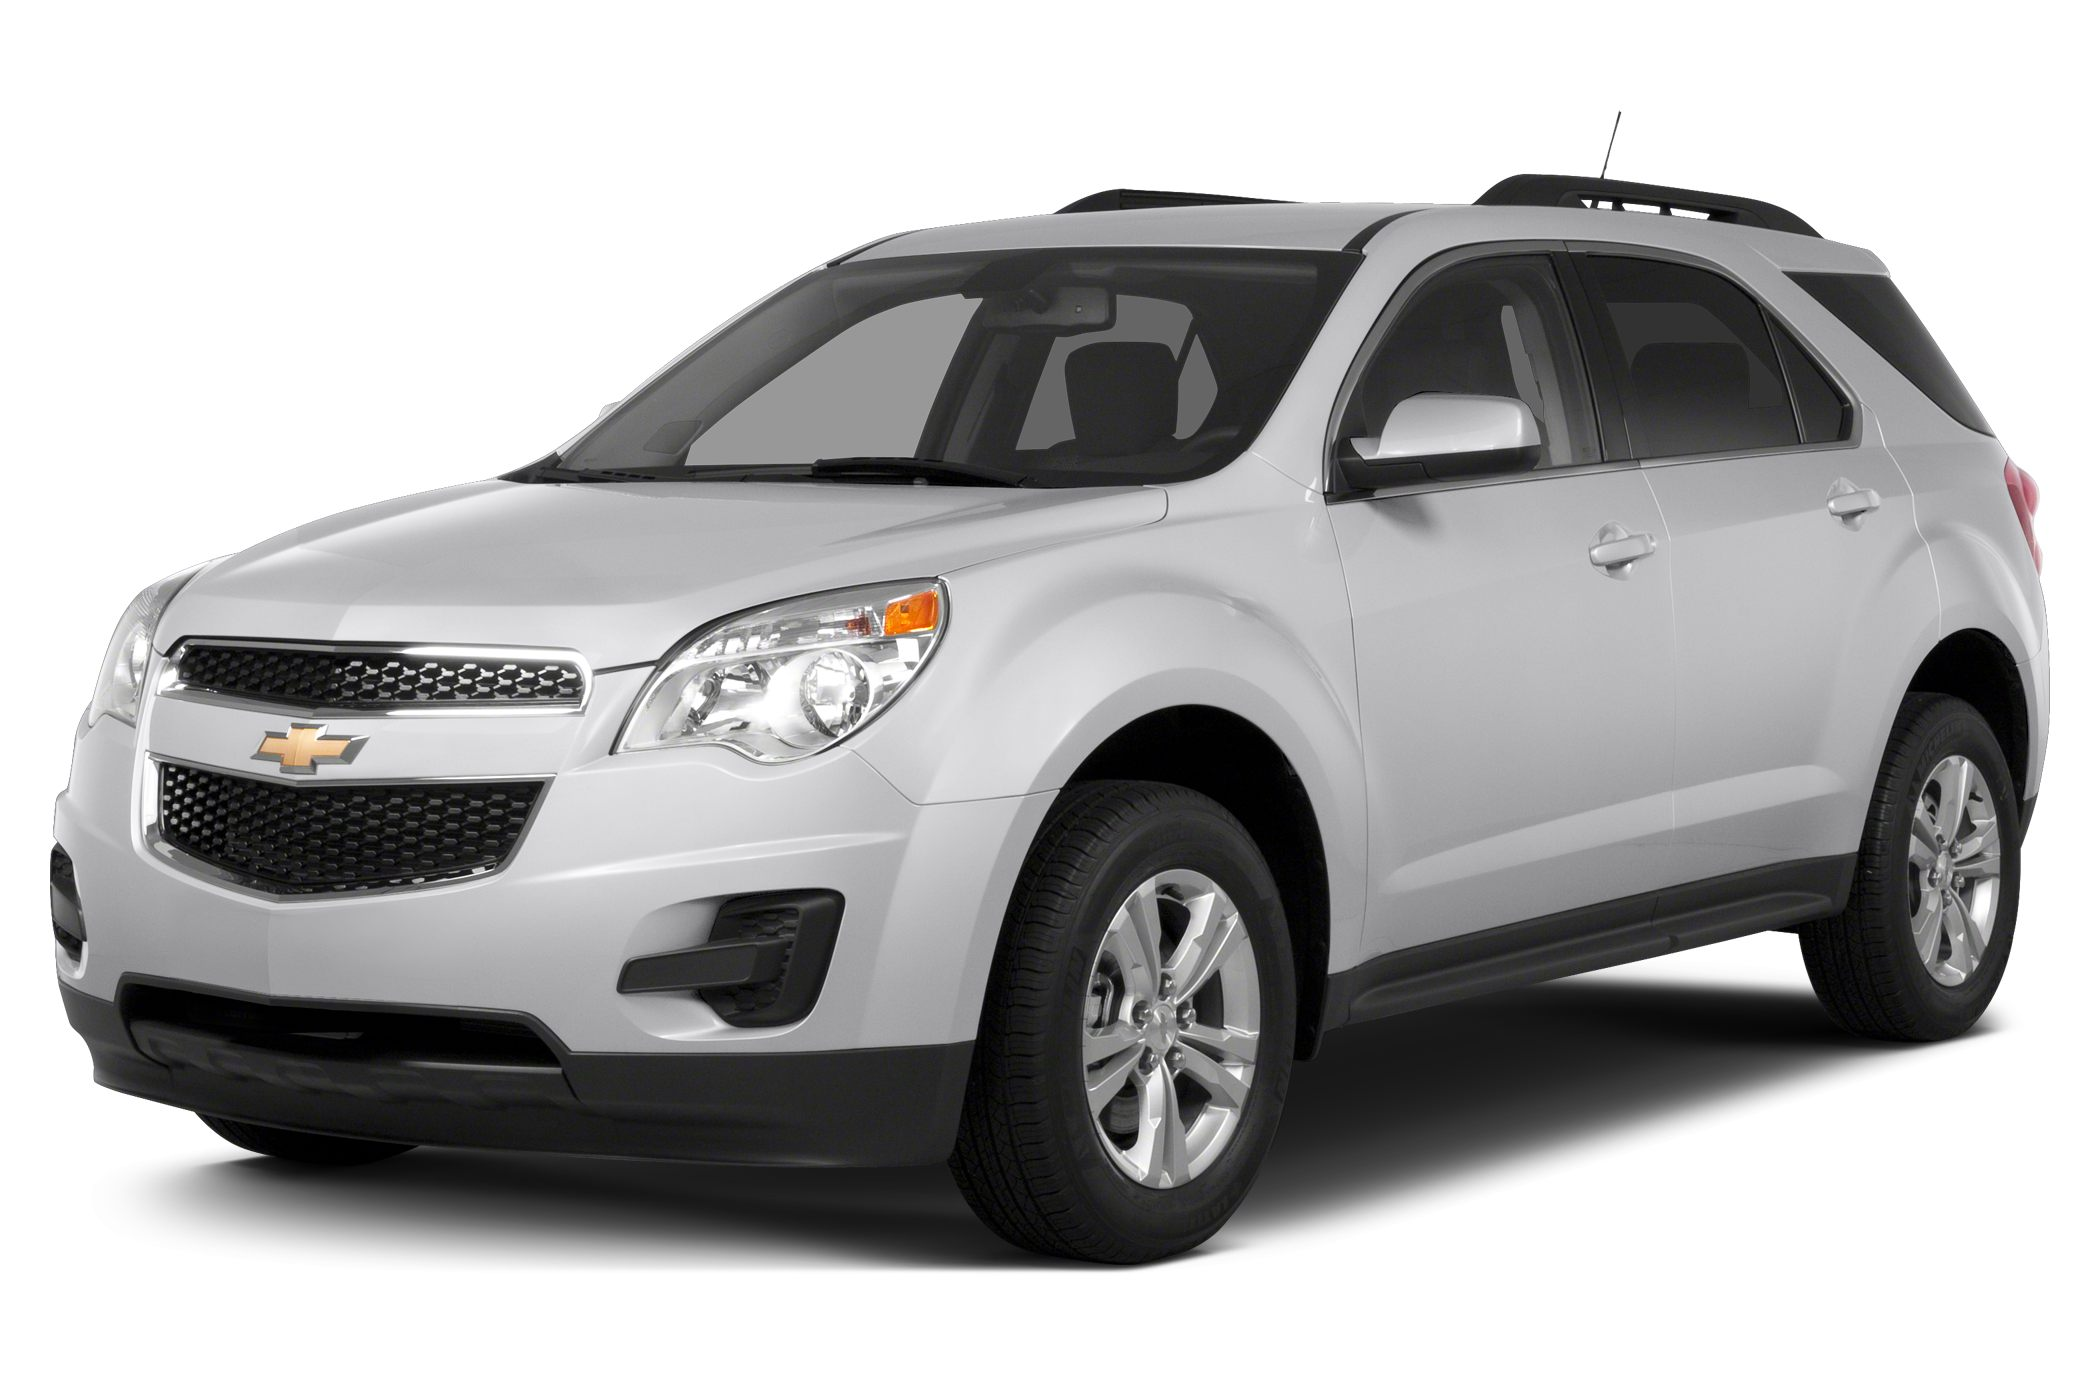 2015 Chevrolet Equinox 1LT SUV for sale in Menomonie for $25,200 with 7 miles.